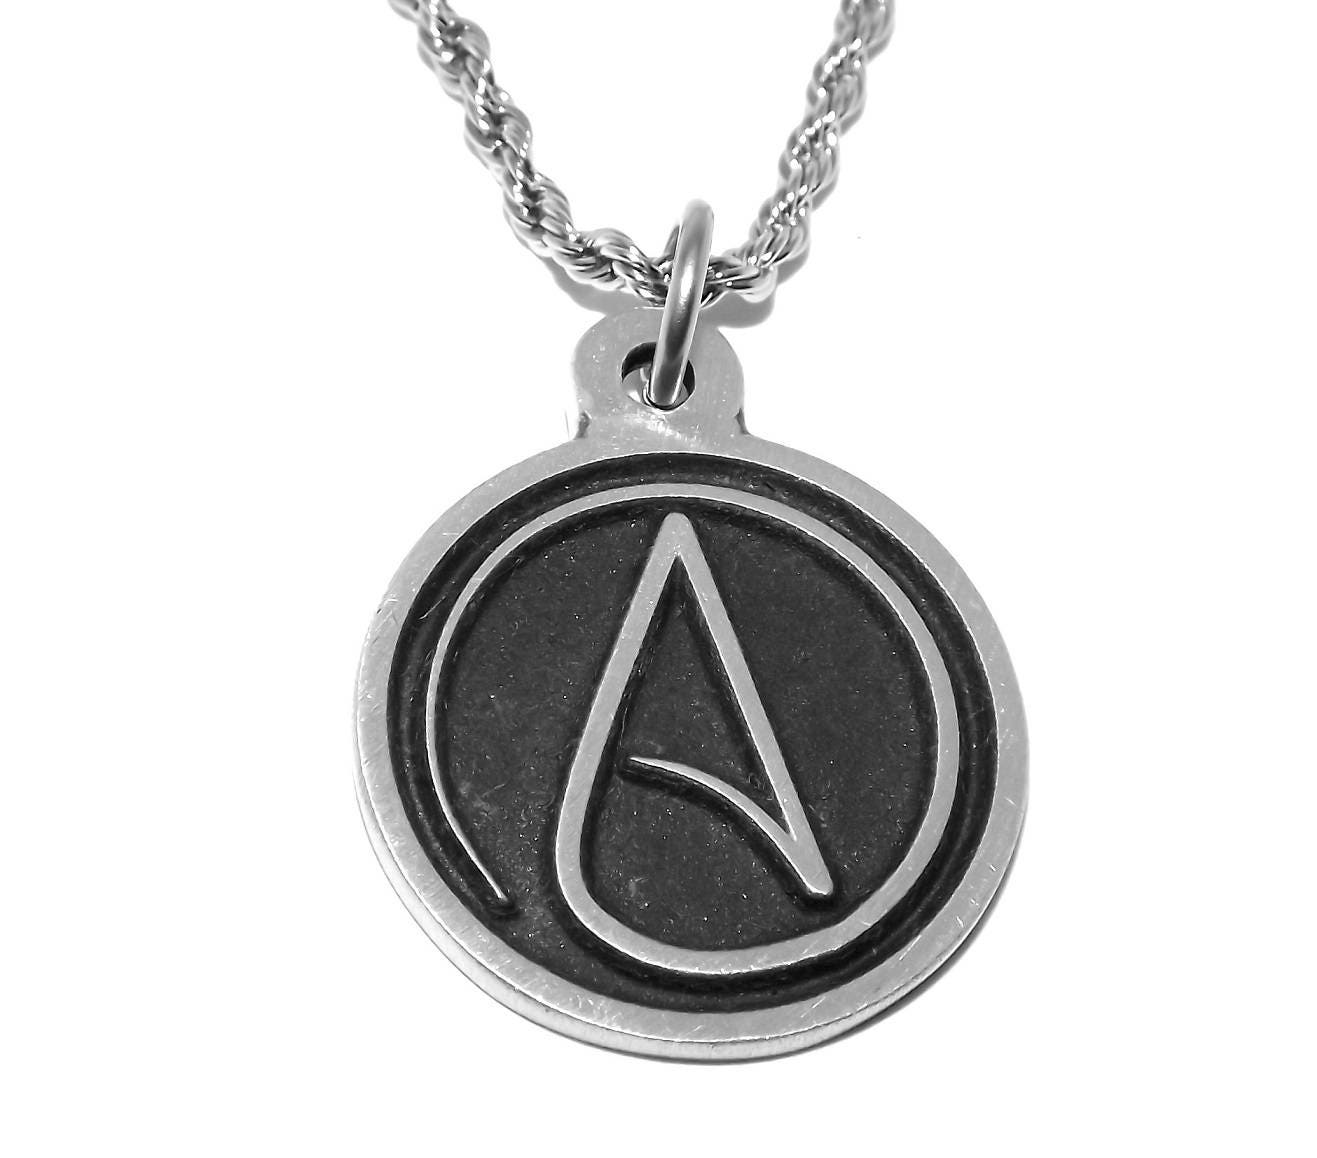 Black pewter atheist symbol pendant necklace with chain zoom aloadofball Choice Image